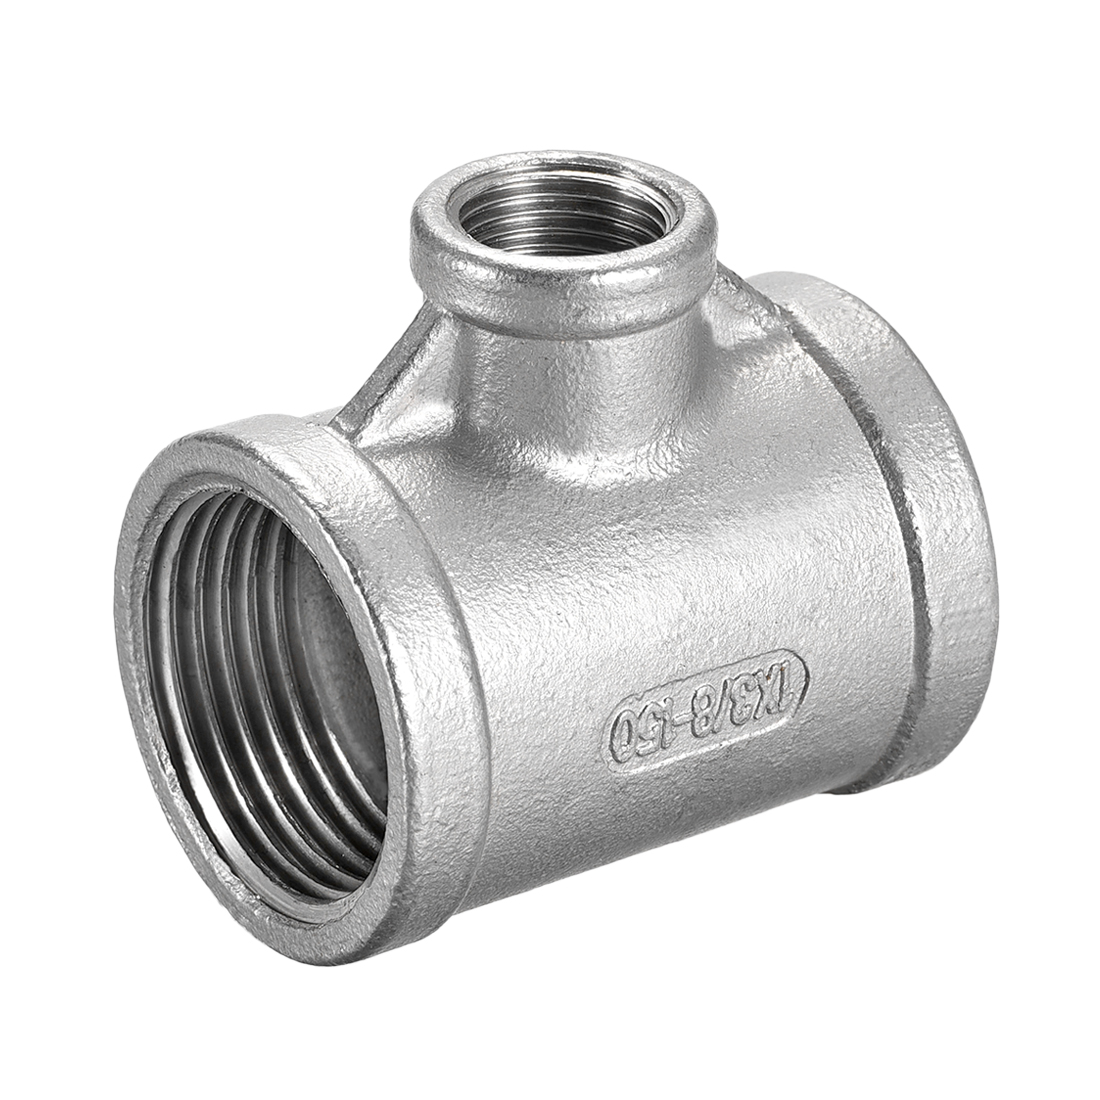 Stainless Steel 304 Cast Pipe Fitting 1BSPTx3/8BSPT Tee Shaped Connector